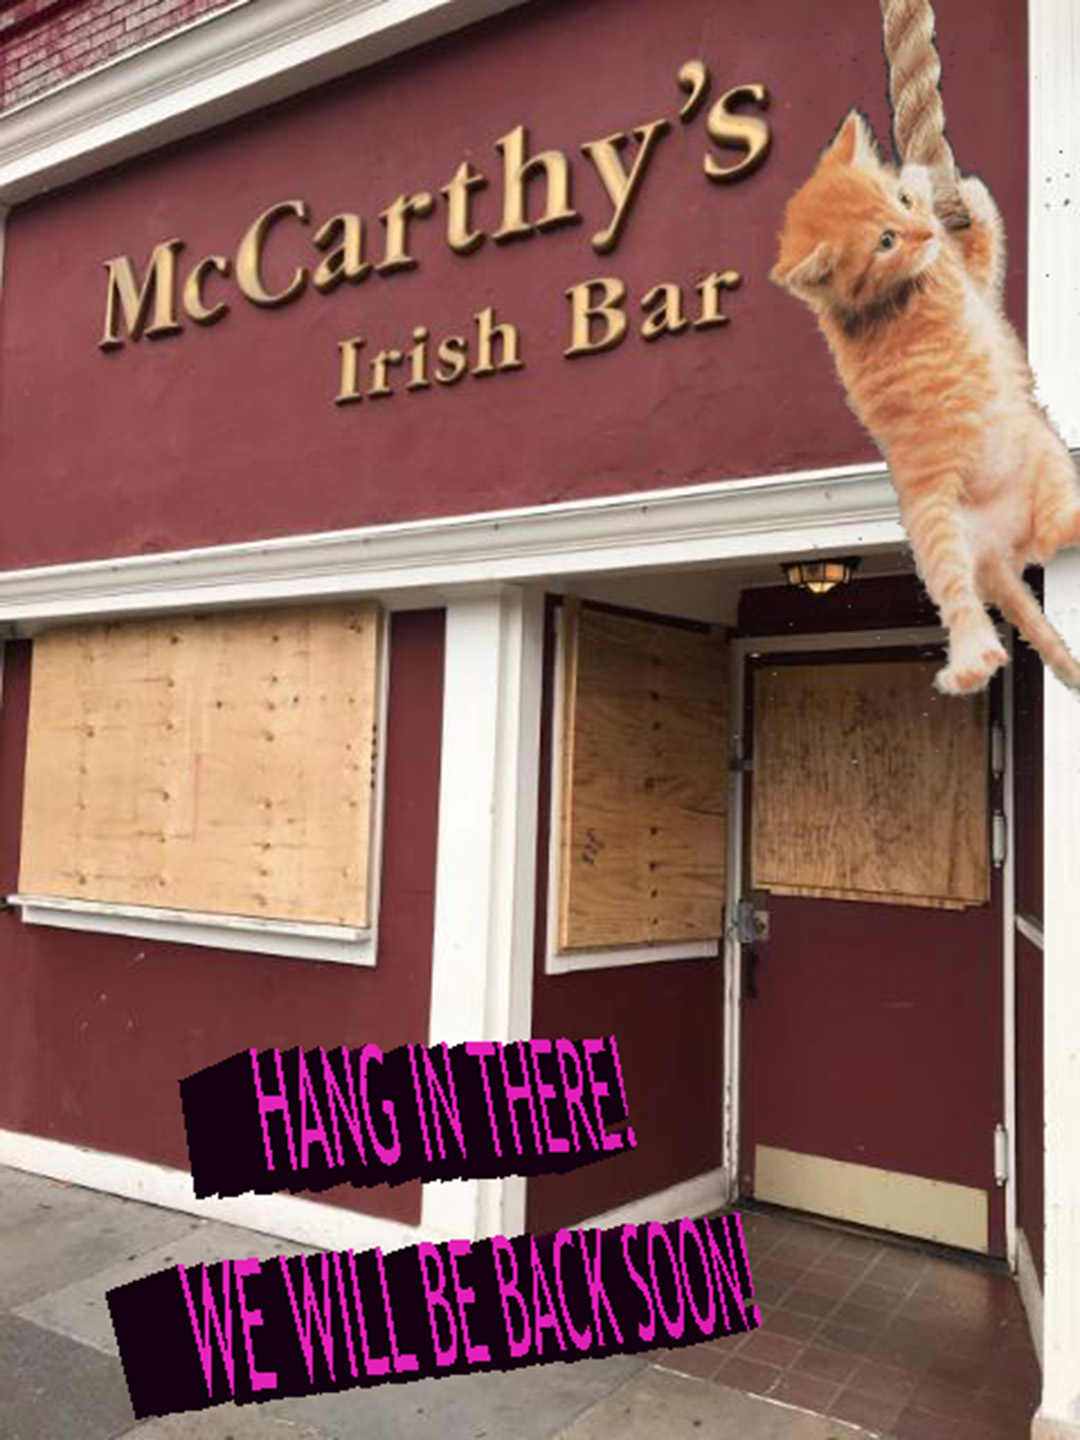 Mccarthy's Will be back